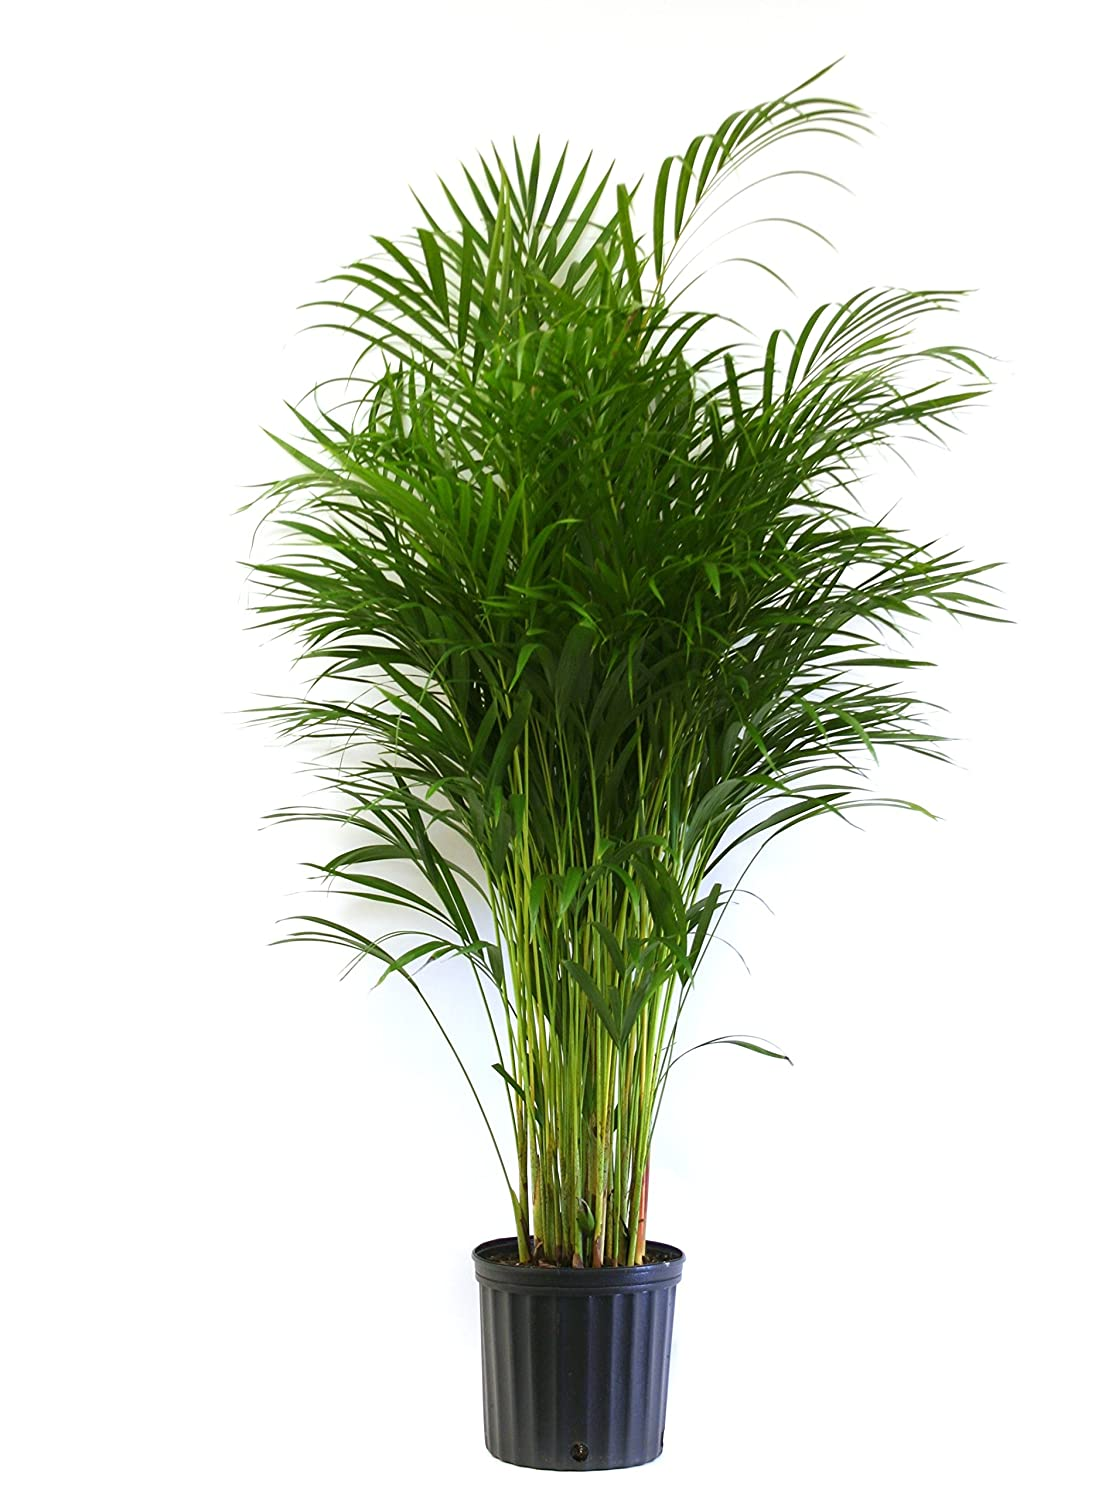 100 Small House Plant Small Plants Plant For Office